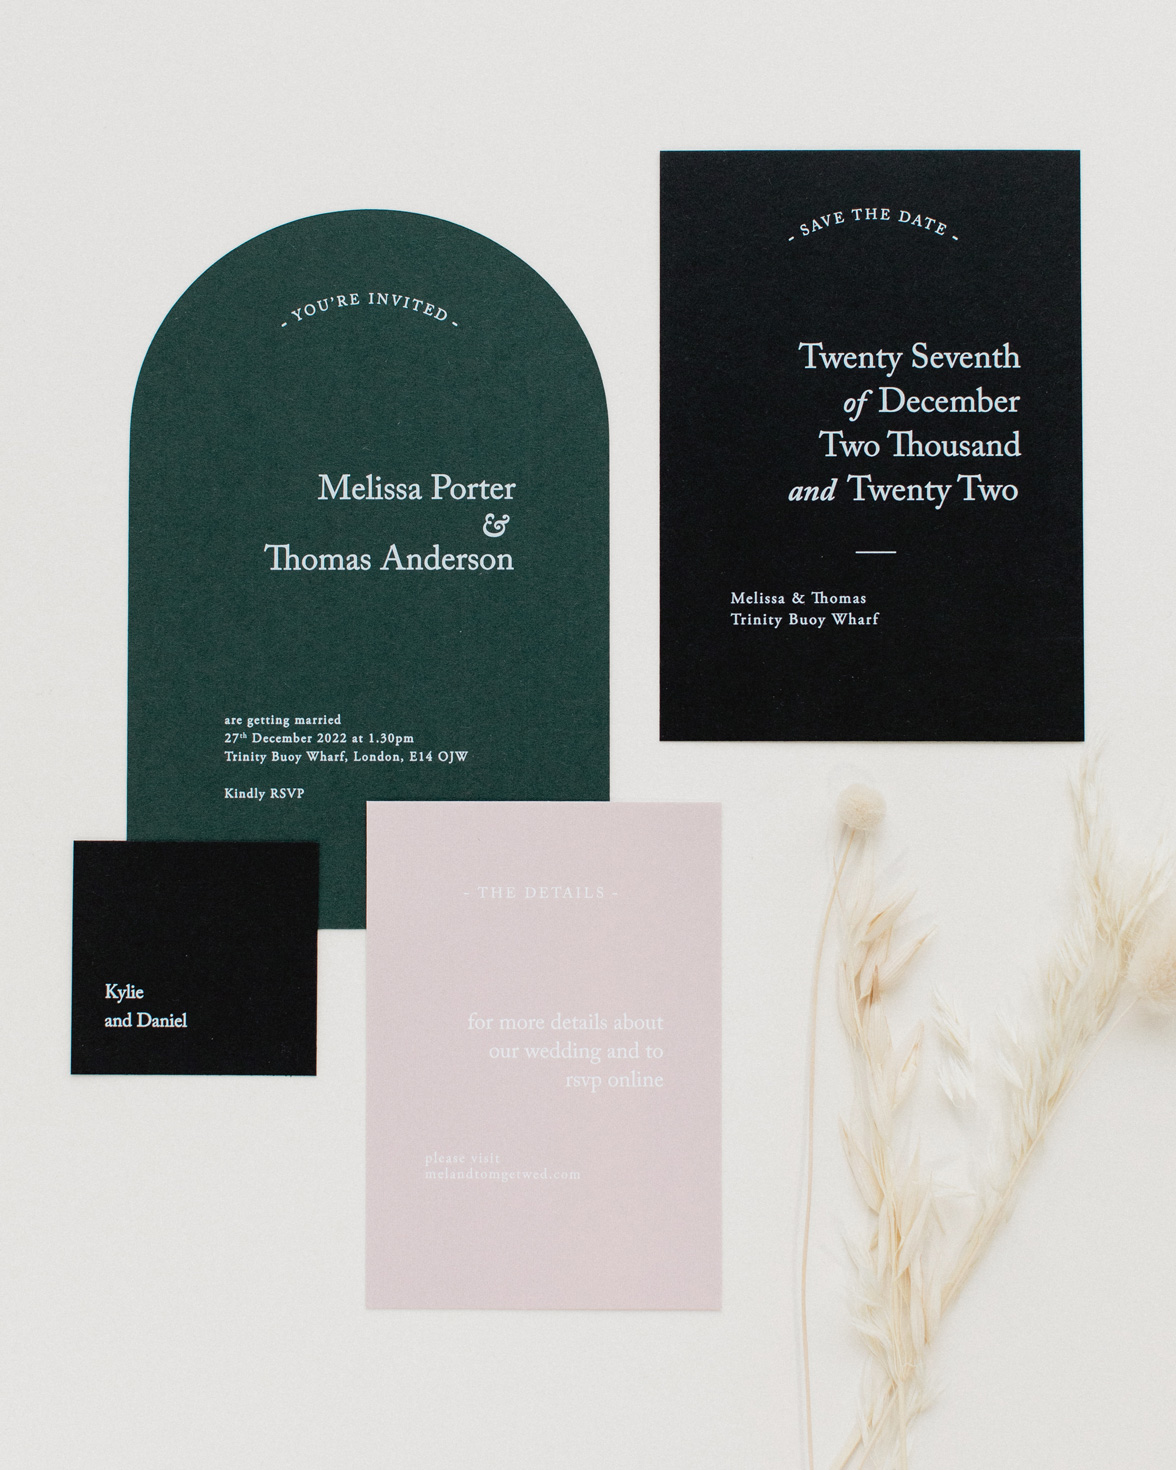 Green Revere wedding stationery collection